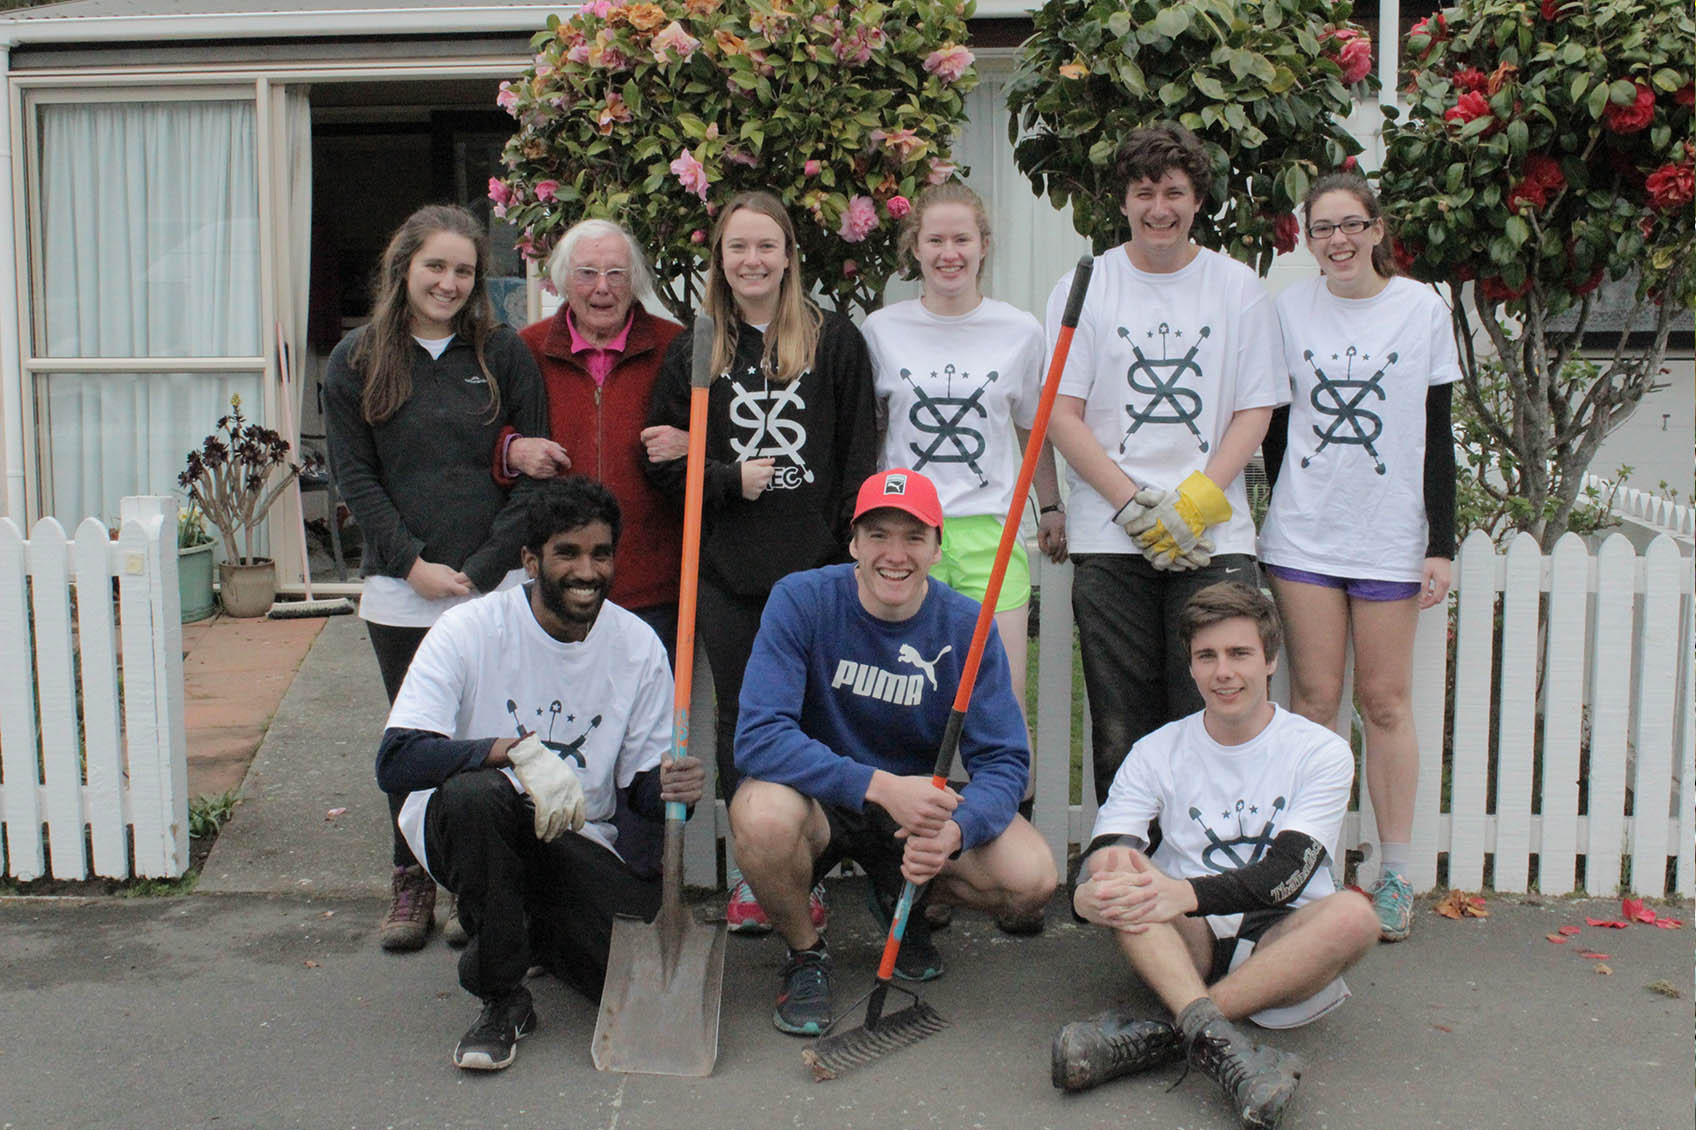 Student Volunteer Army clean up with elderly woman